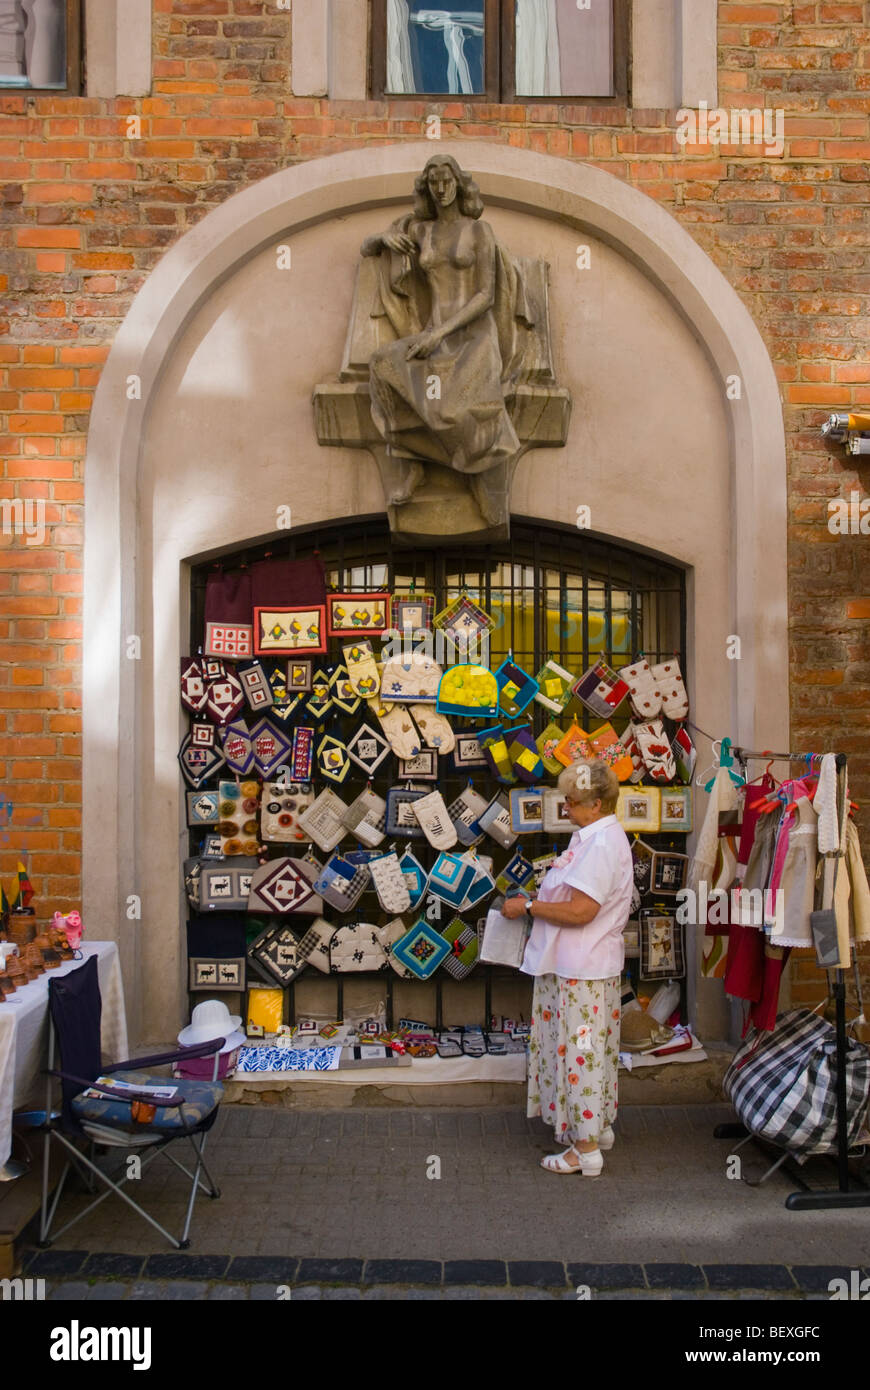 Souvenir shopping along Pilies gatve street in old town Vilnius Lithuania Europe - Stock Image